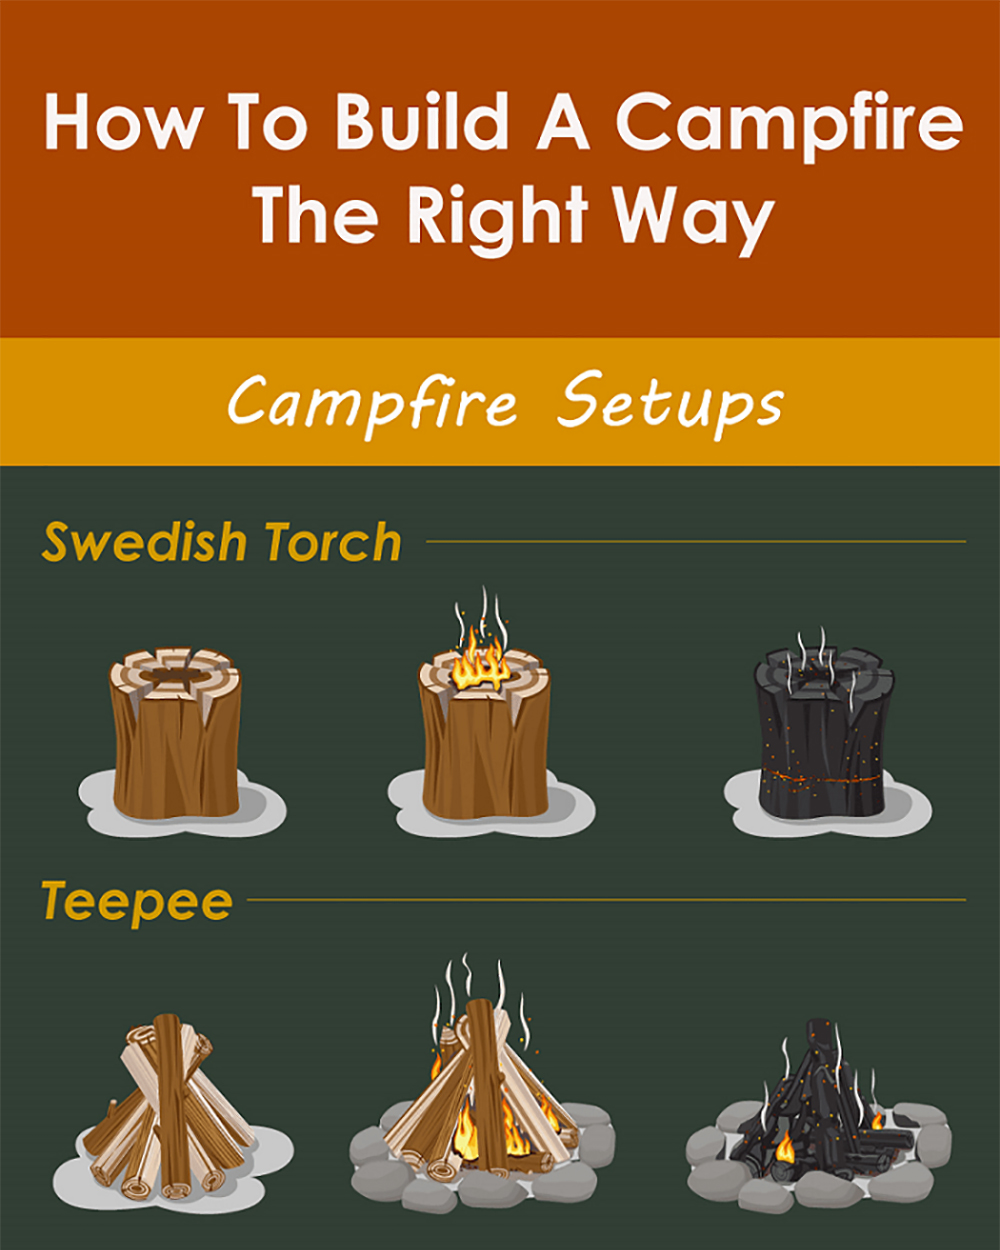 Campfire styles infographic fire wood heat weather fuel kindling tinder 2